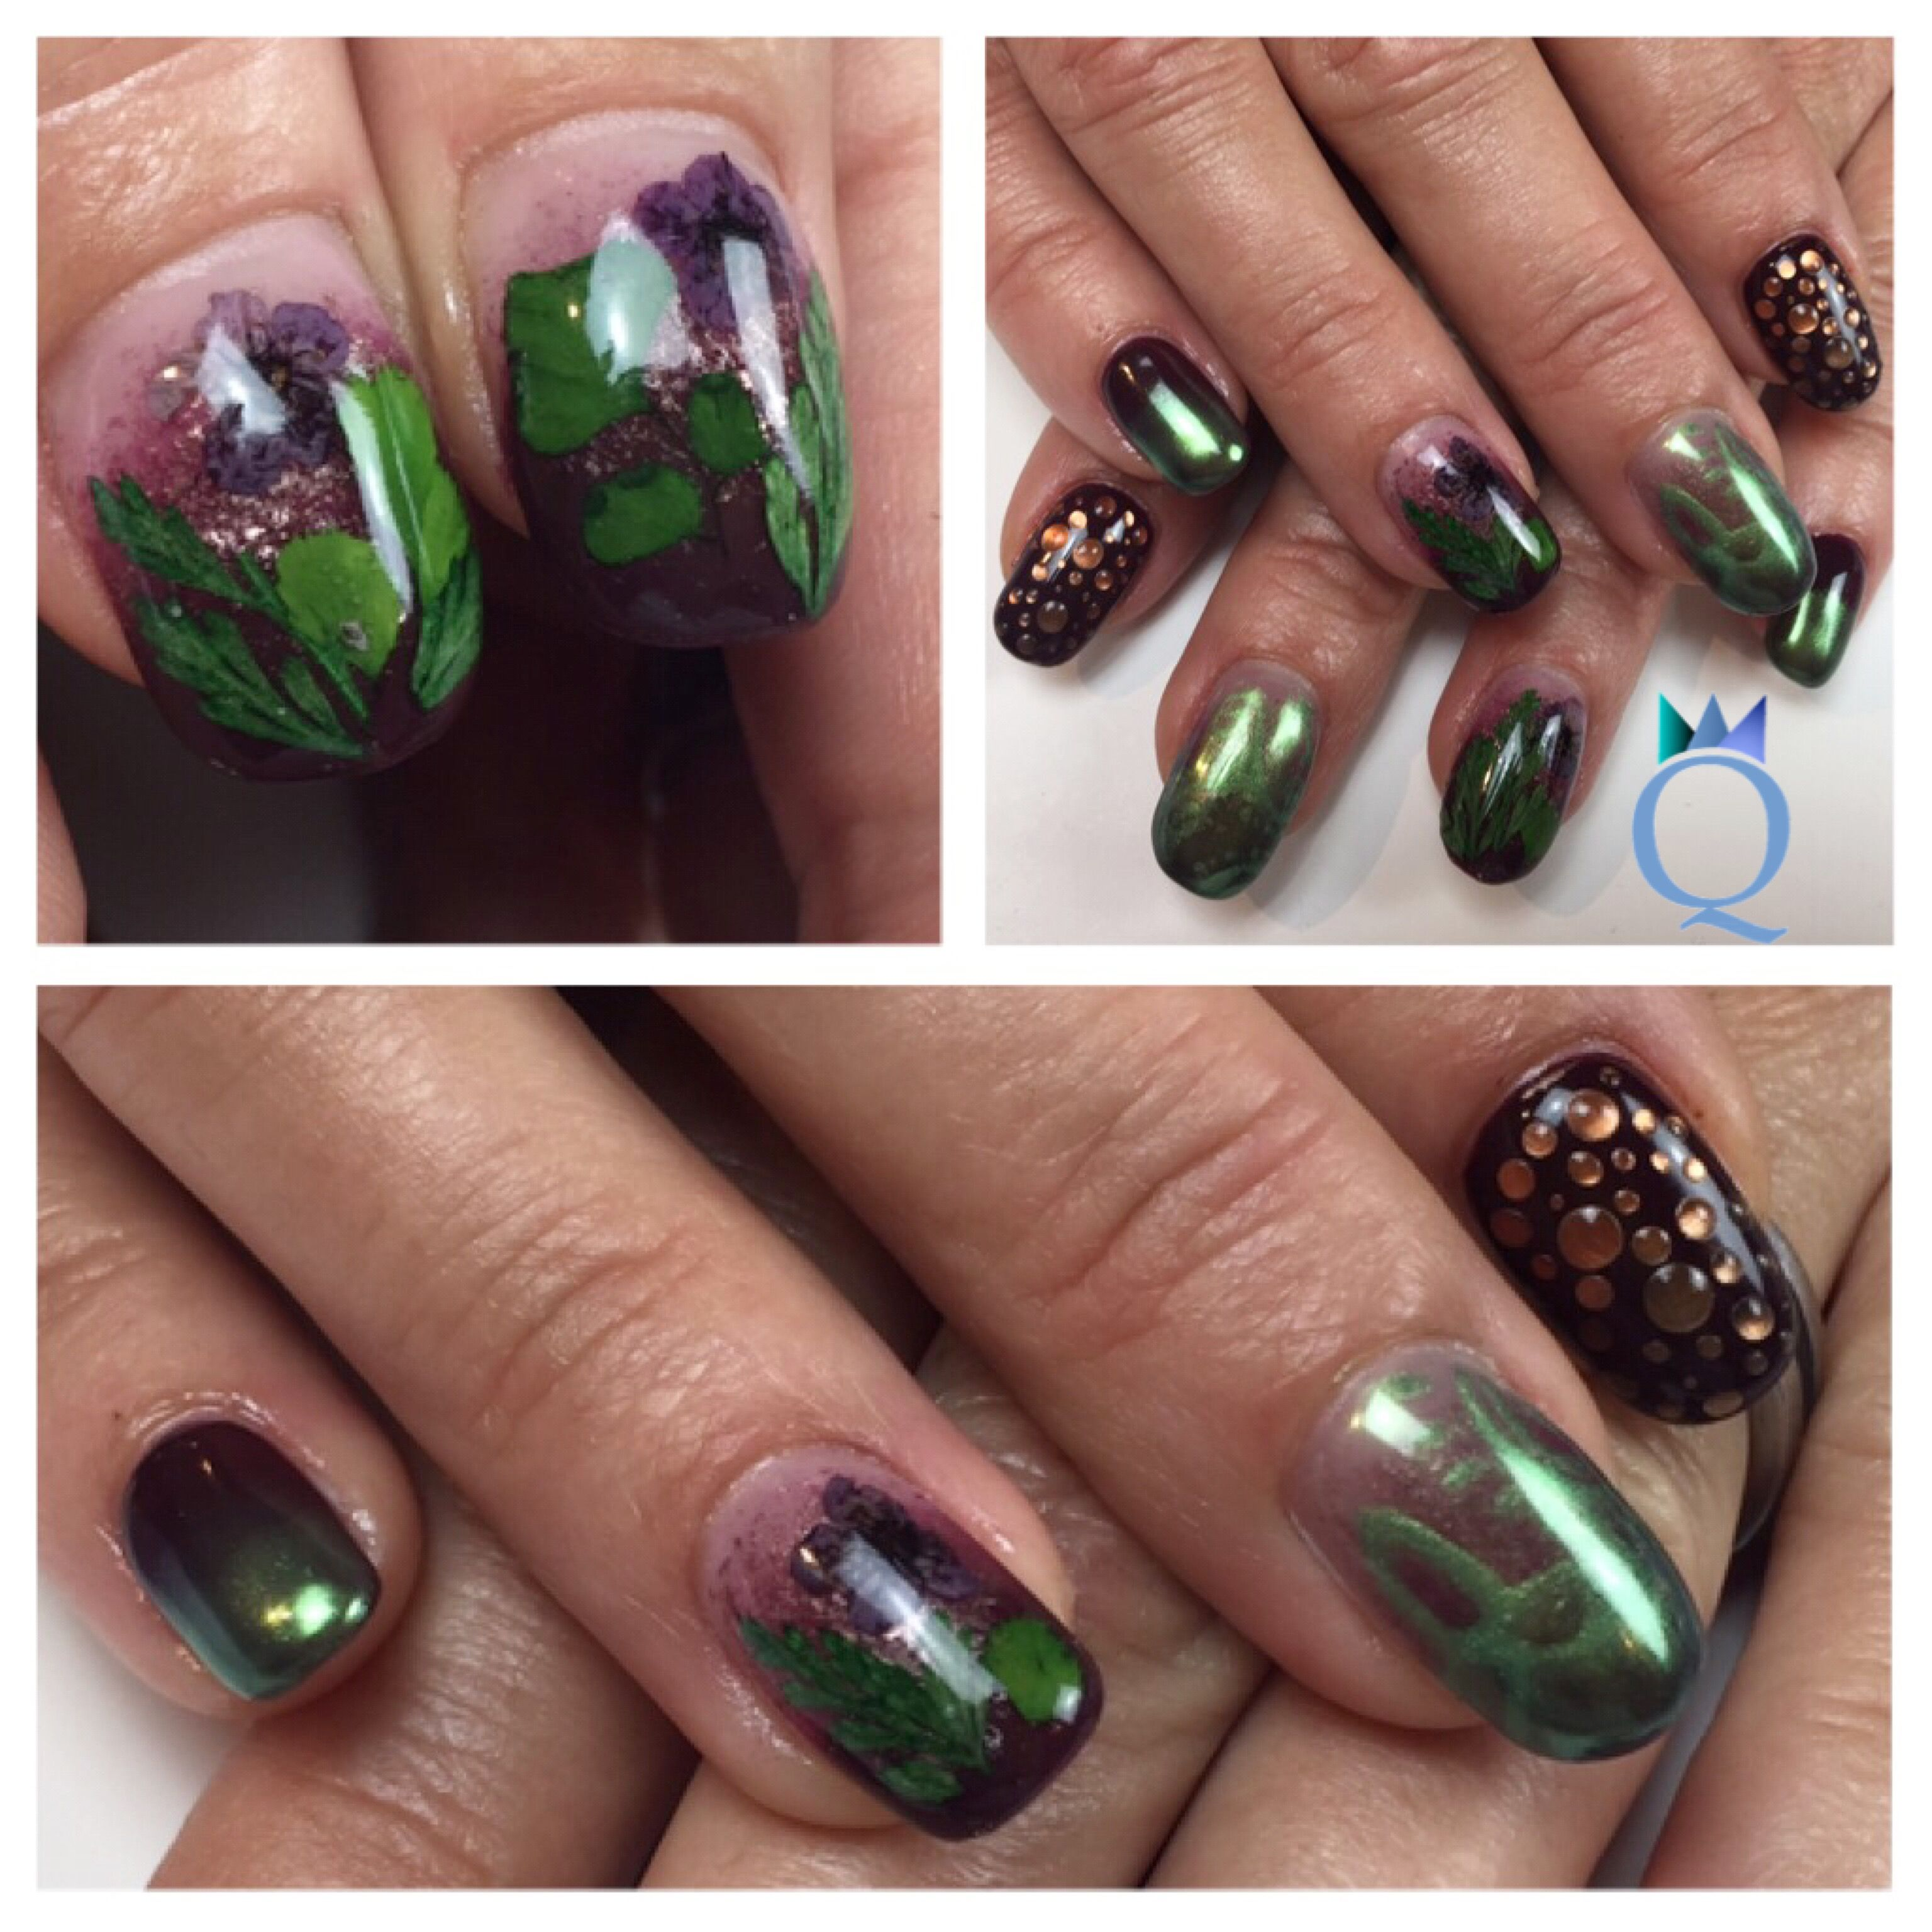 shortnails #gelnails #nails #real #flowers #green #chrome #ombre ...